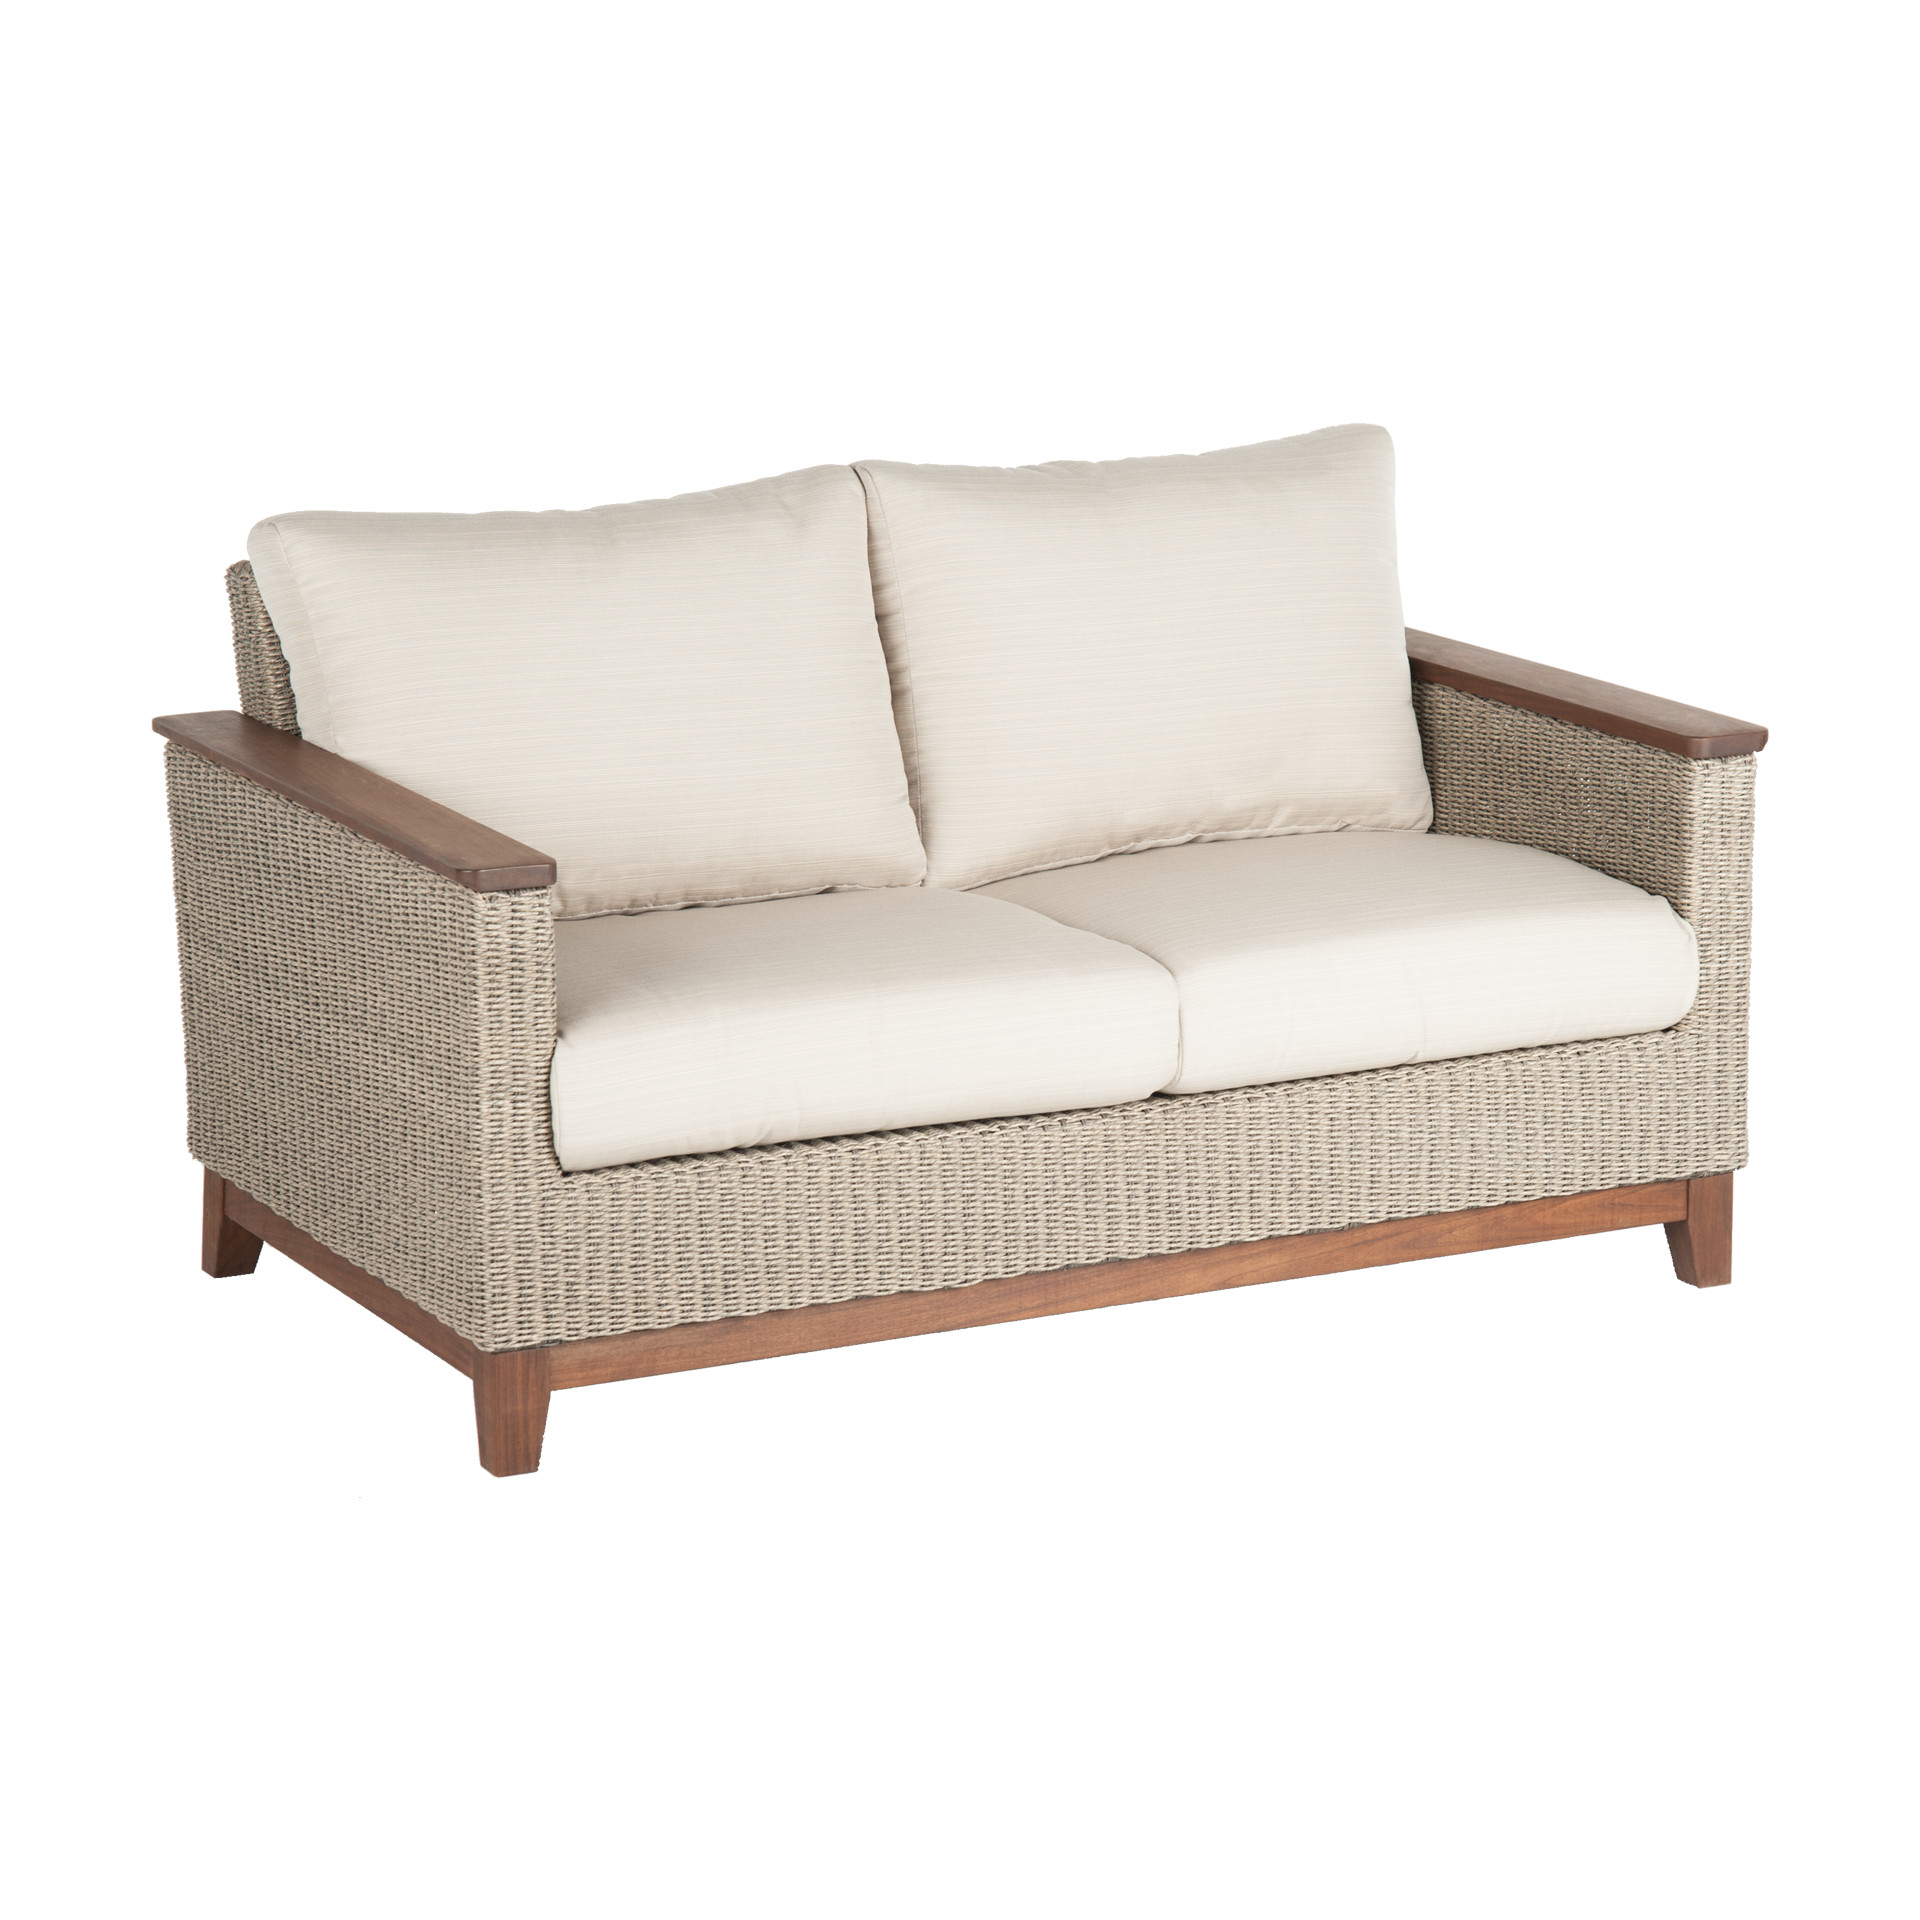 Jensen Leisure Coral Sofa